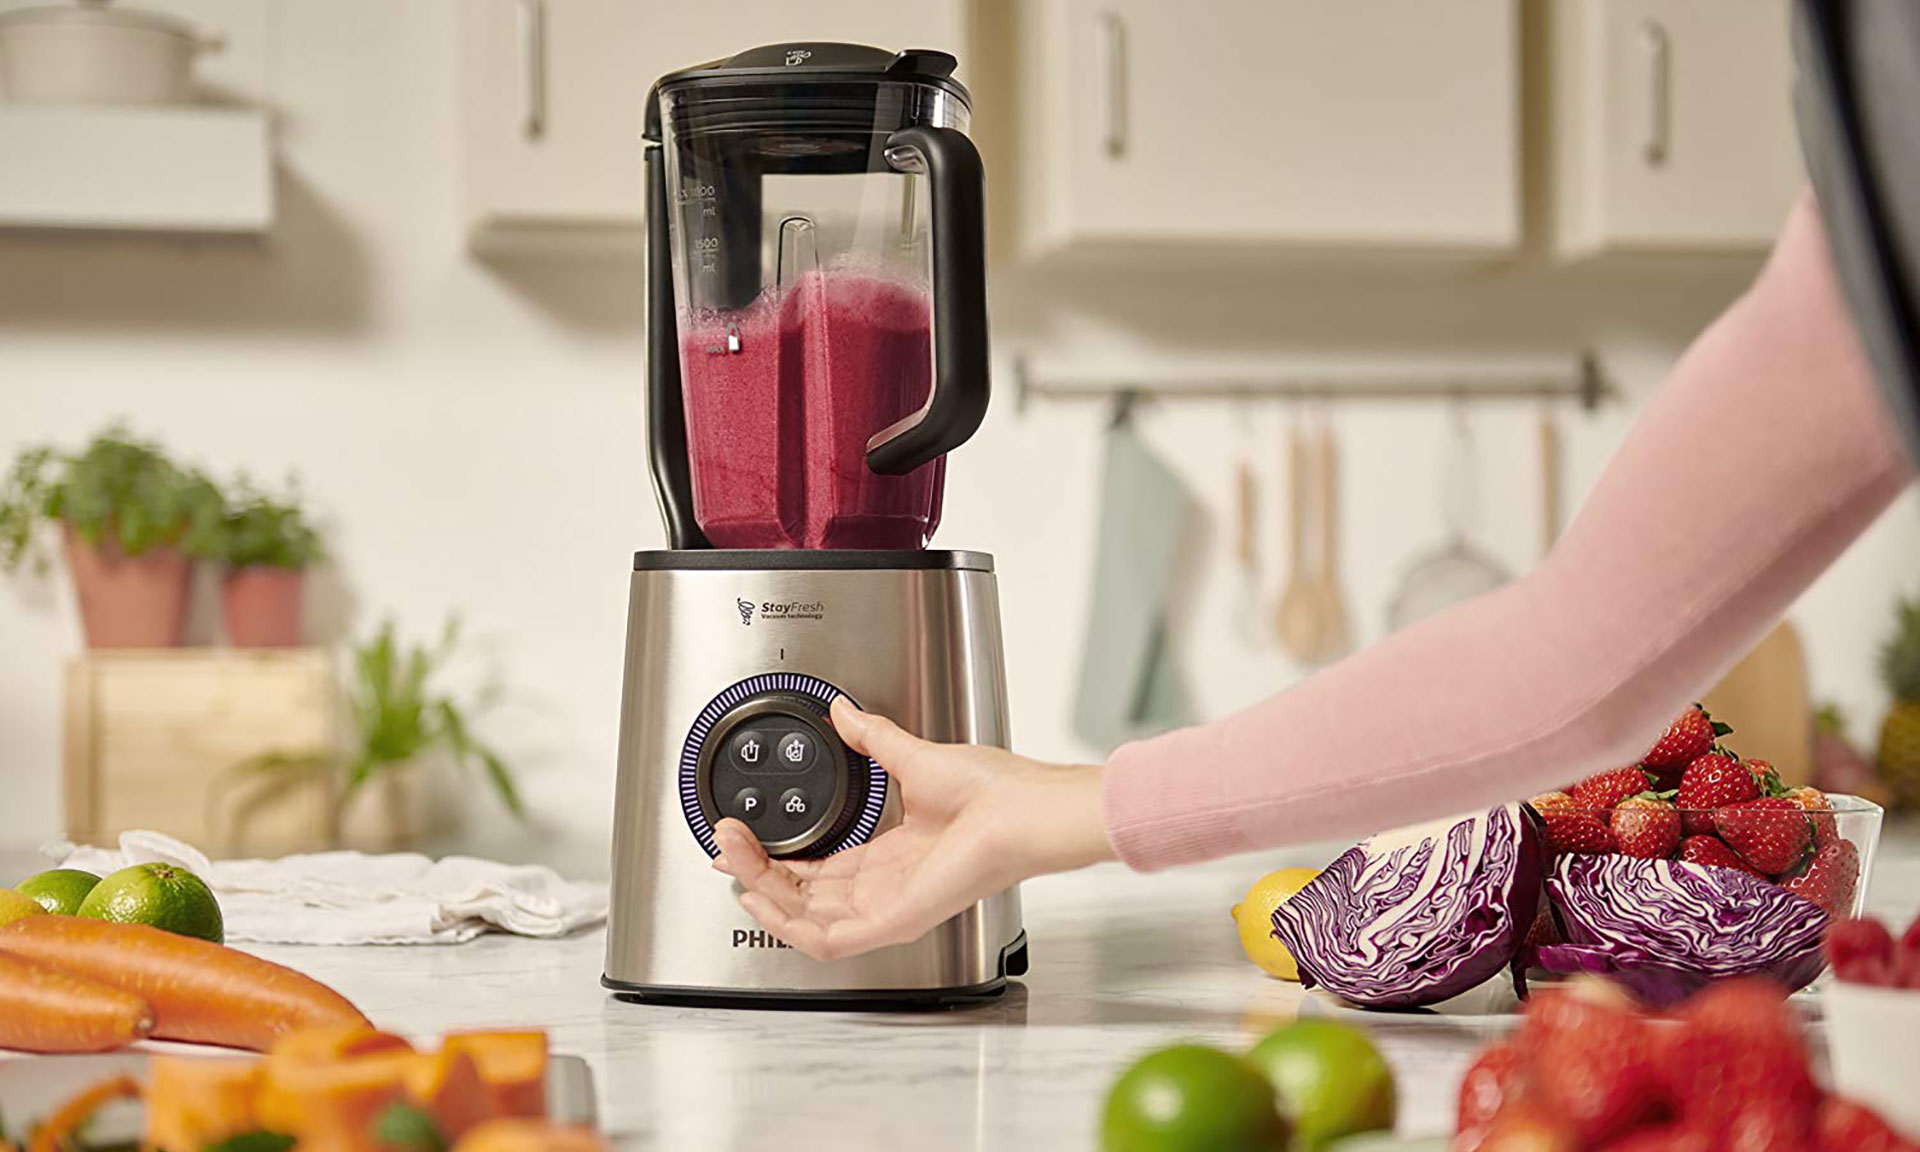 Image by Fresh Living on Philips Vacuum